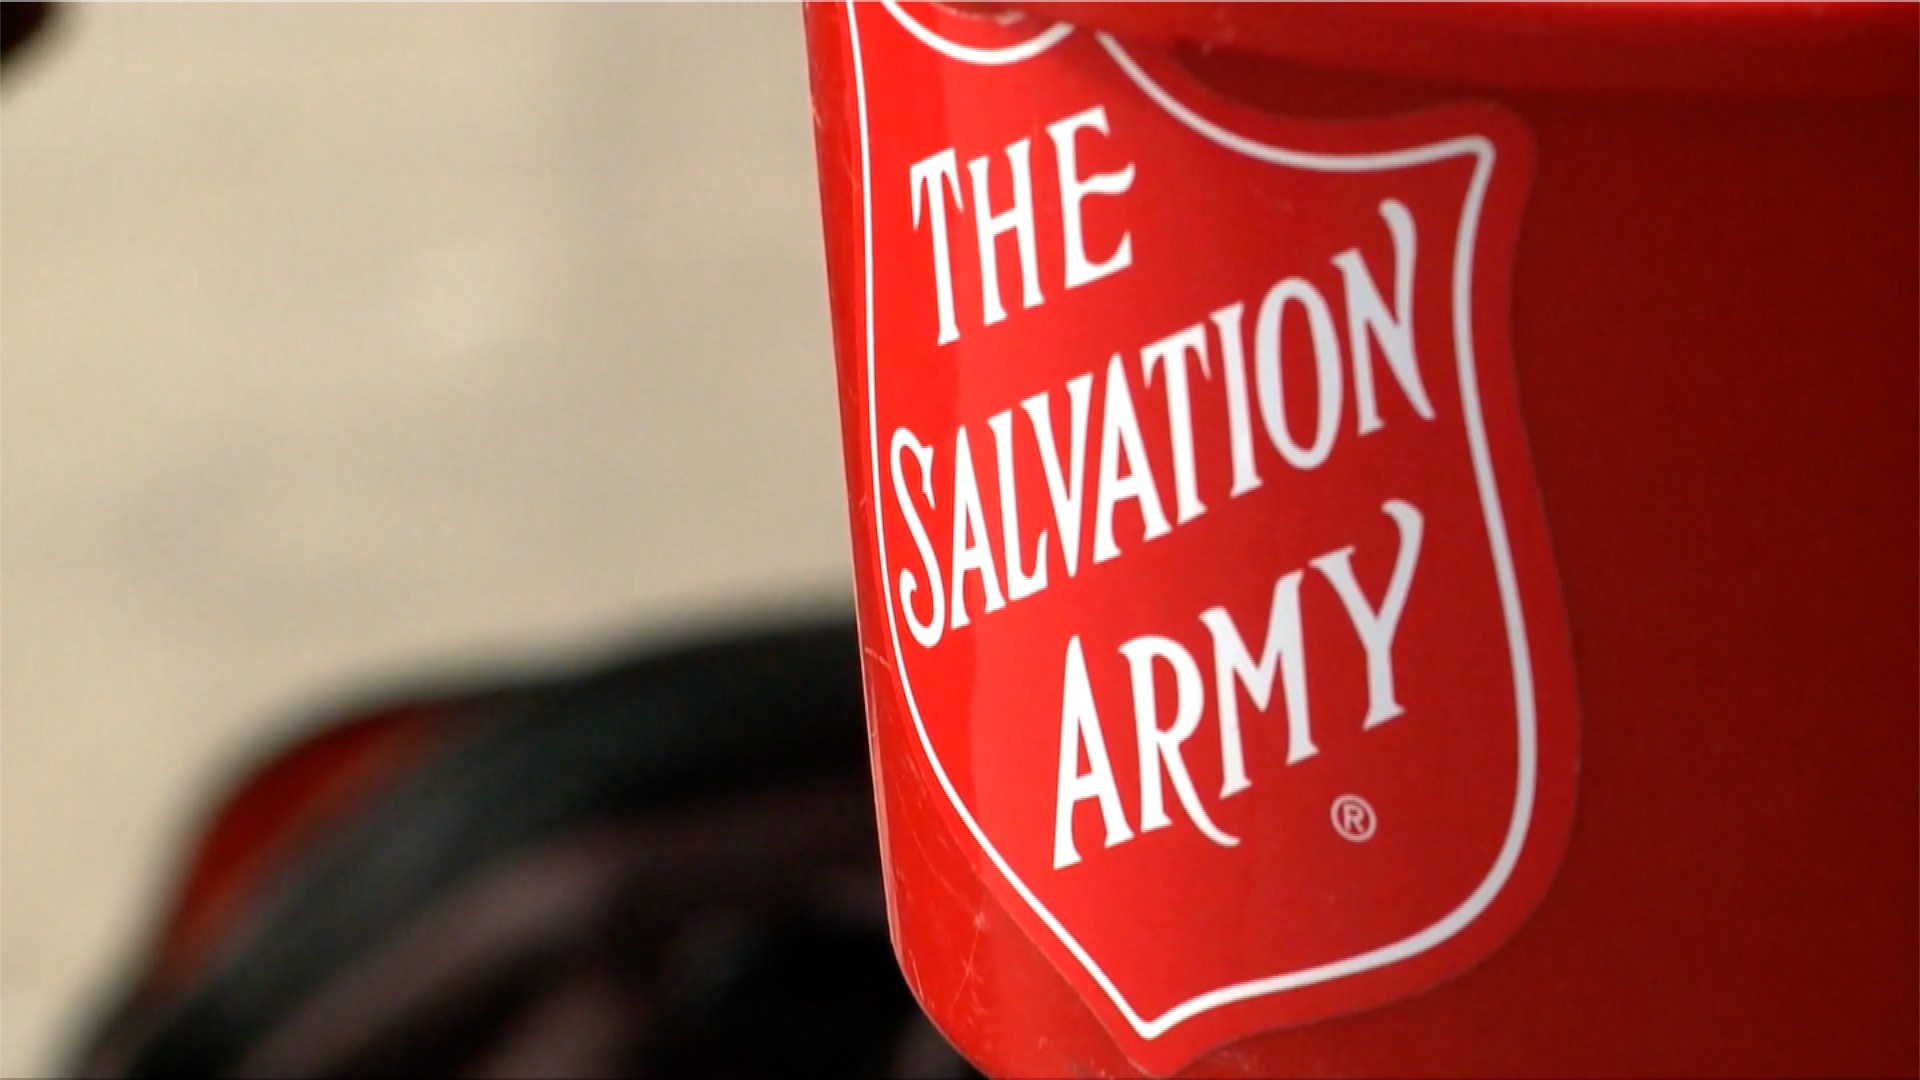 L Am Looking For Signing Up With Christmas Charities In Alabama 2020 WKRG | The Salvation Army of Coastal Alabama, Walmart join forces